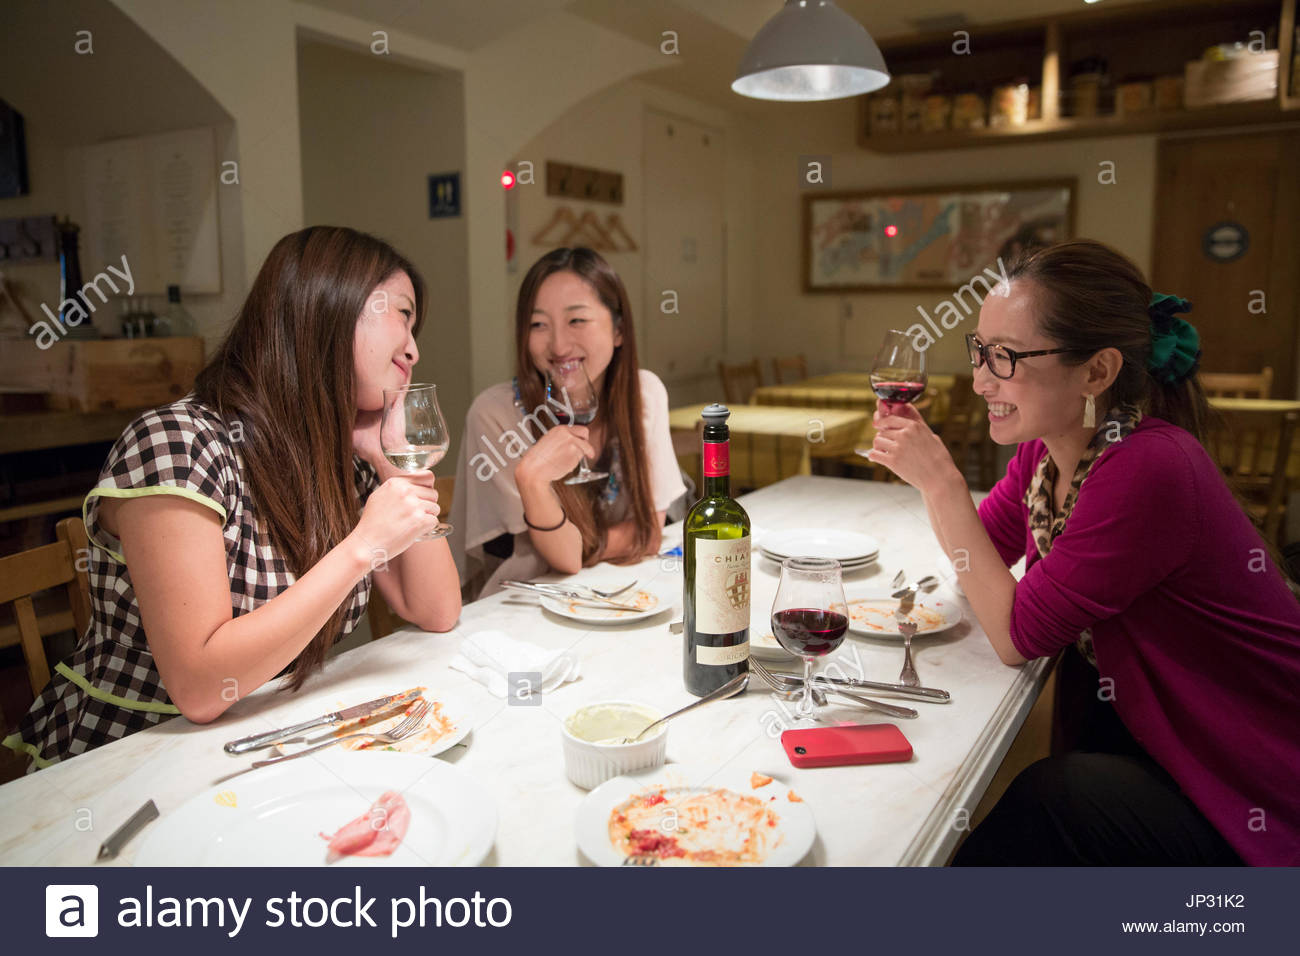 Asia, Japan, Tokyo, womans in restaurant - Stock Image